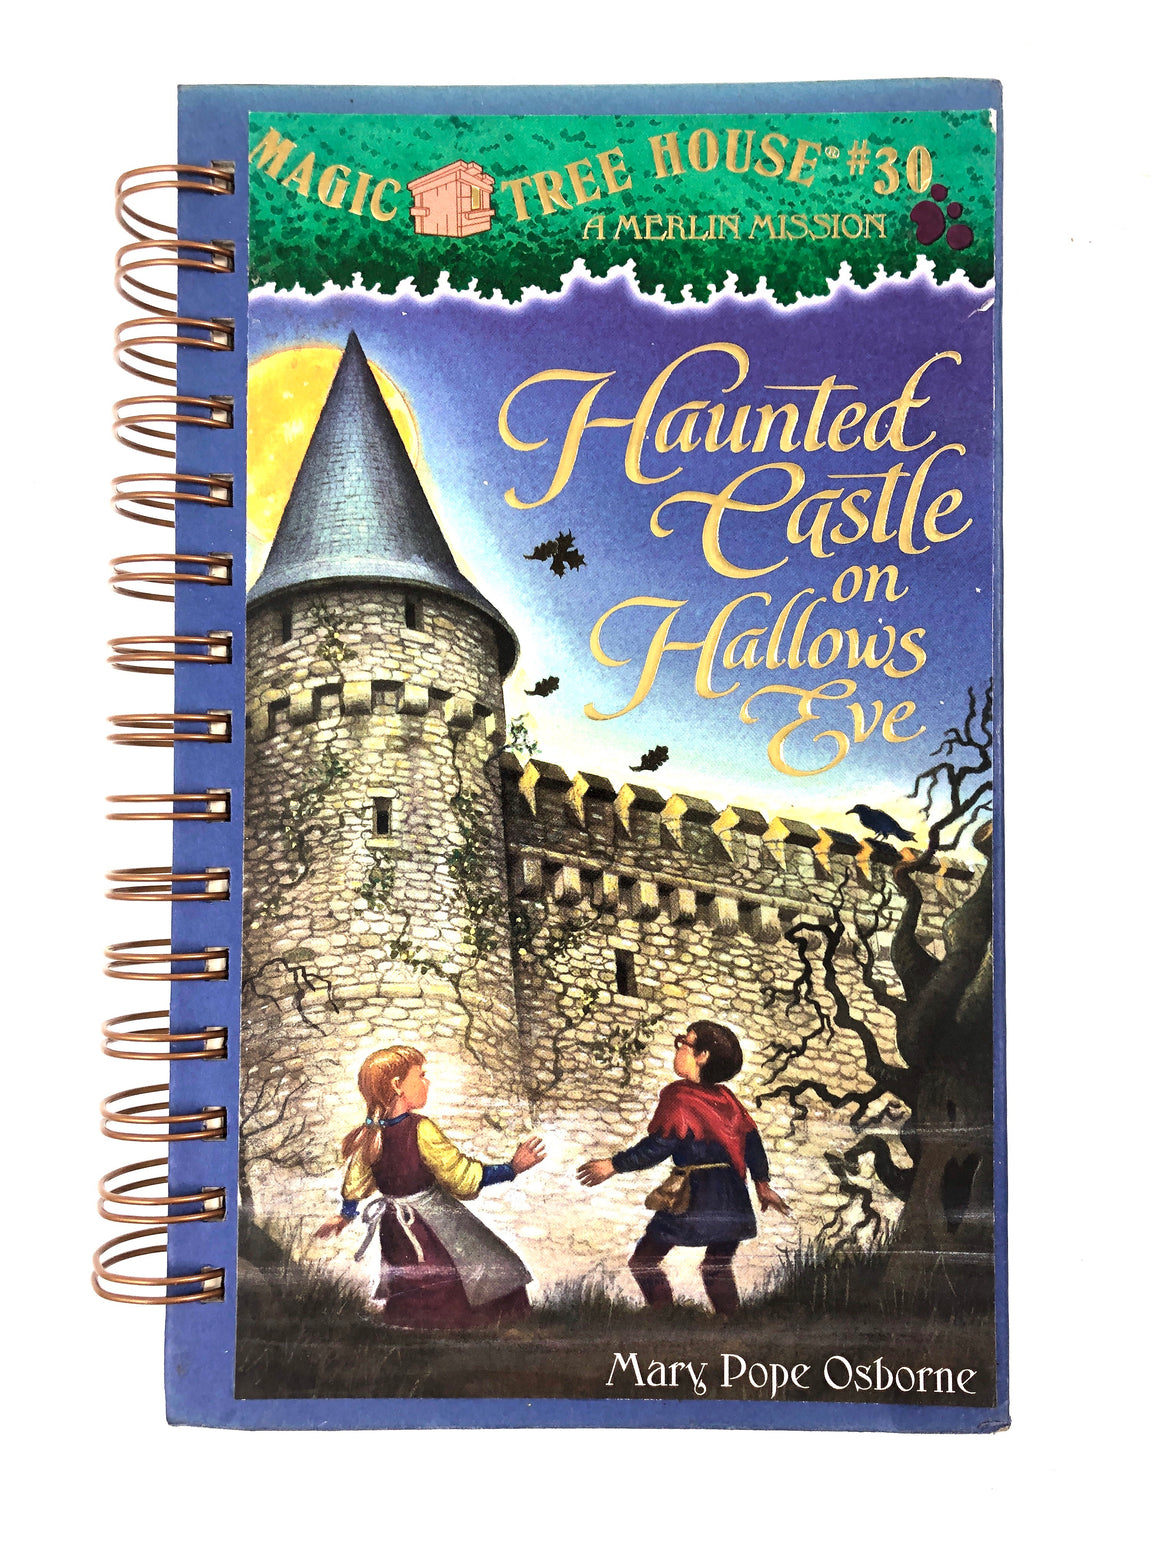 Magic Tree House #30 Haunted Castle on Hallows Eve-Red Barn Collections